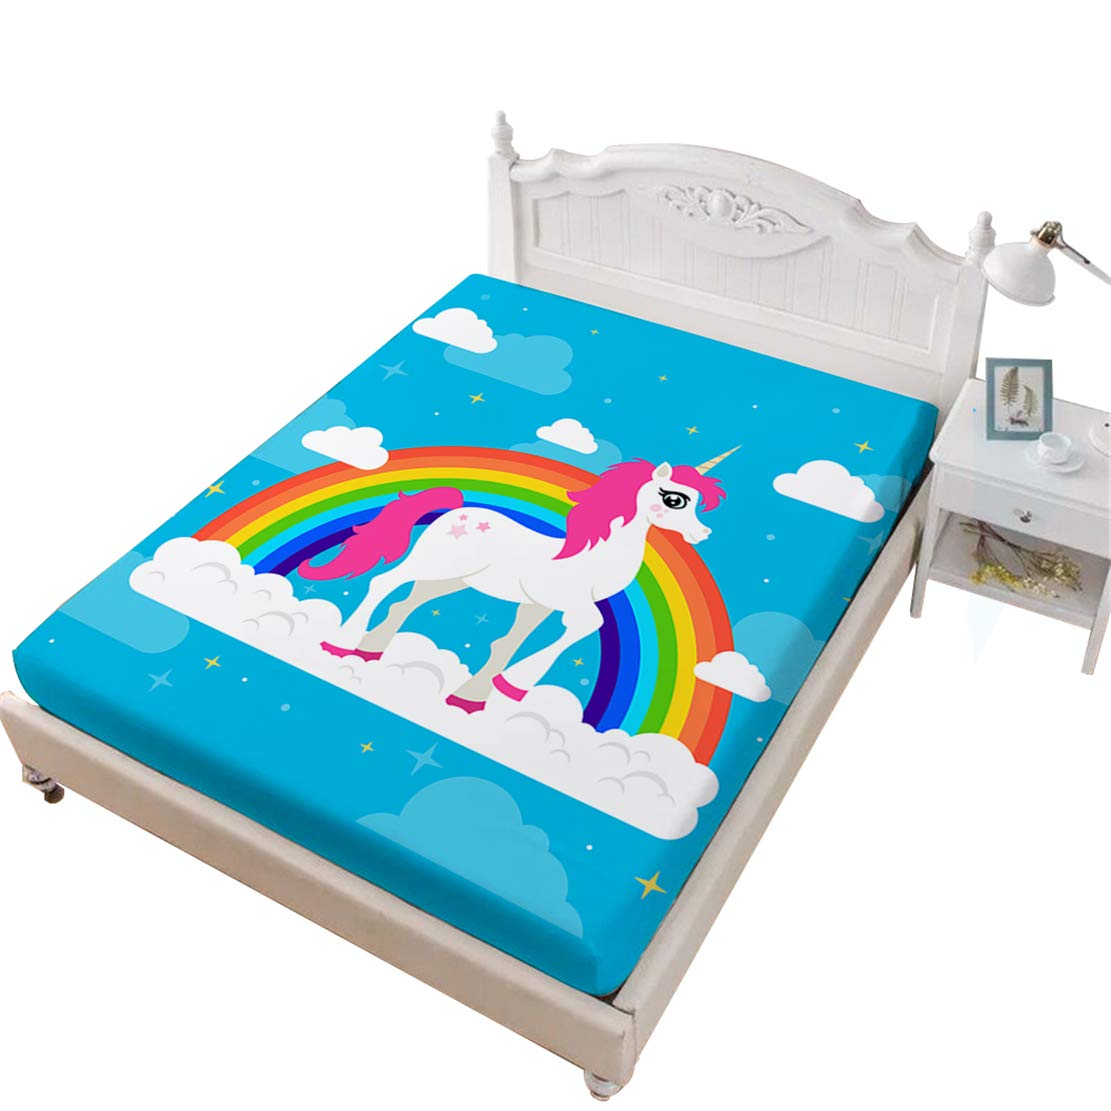 JARSON 1Piece Cartoon Unicorn Fitted Sheet,Plant Floral Printed Sheet Twin Size Deep Pocket Bedding,Girls Gift for Bedroom Decor